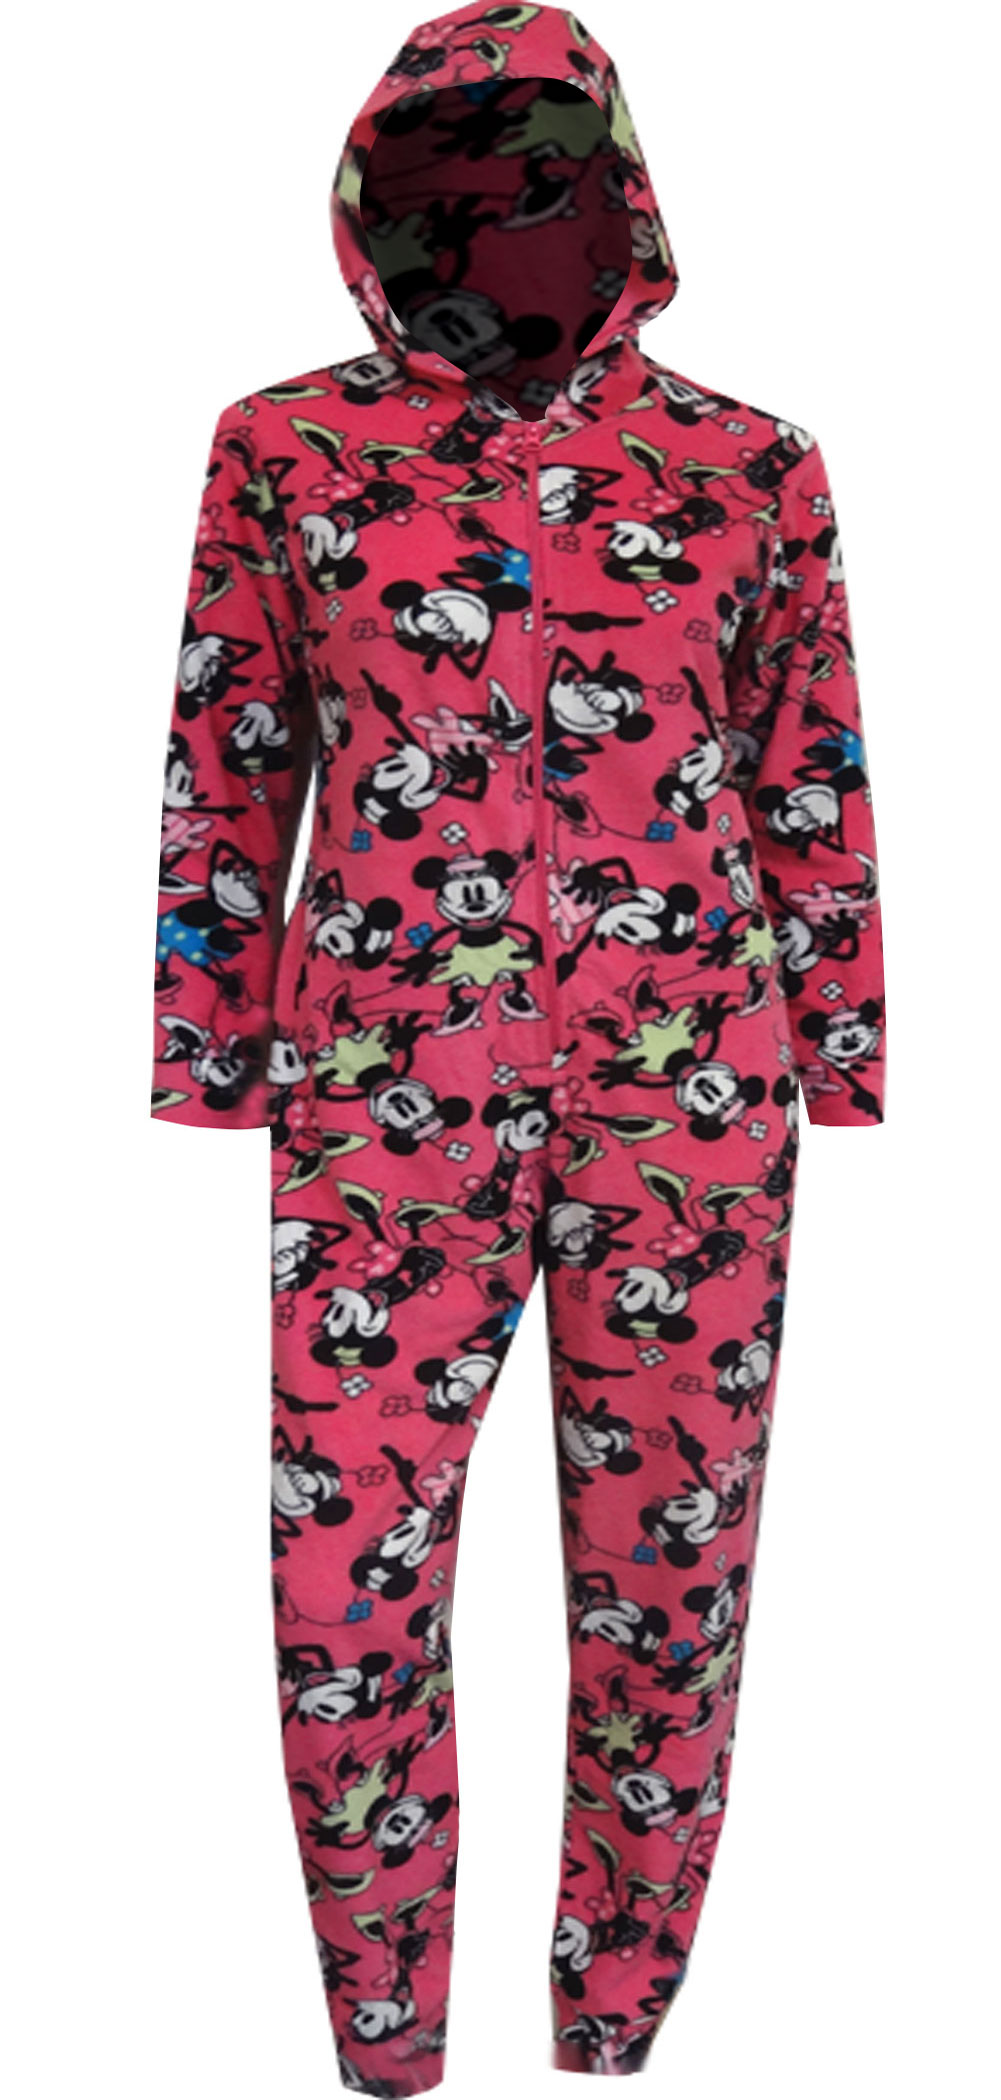 Official Disney Ladies Minnie or Mickey Mouse Onesie All In One Pyjamas NEW. Brand New. $ to $ From United Kingdom. Buy It Now +$ shipping. Customized Baby Girl Minnie Mouse Onesie Bodysuit One Piece. New (Other) $ Buy It Now +$ shipping.